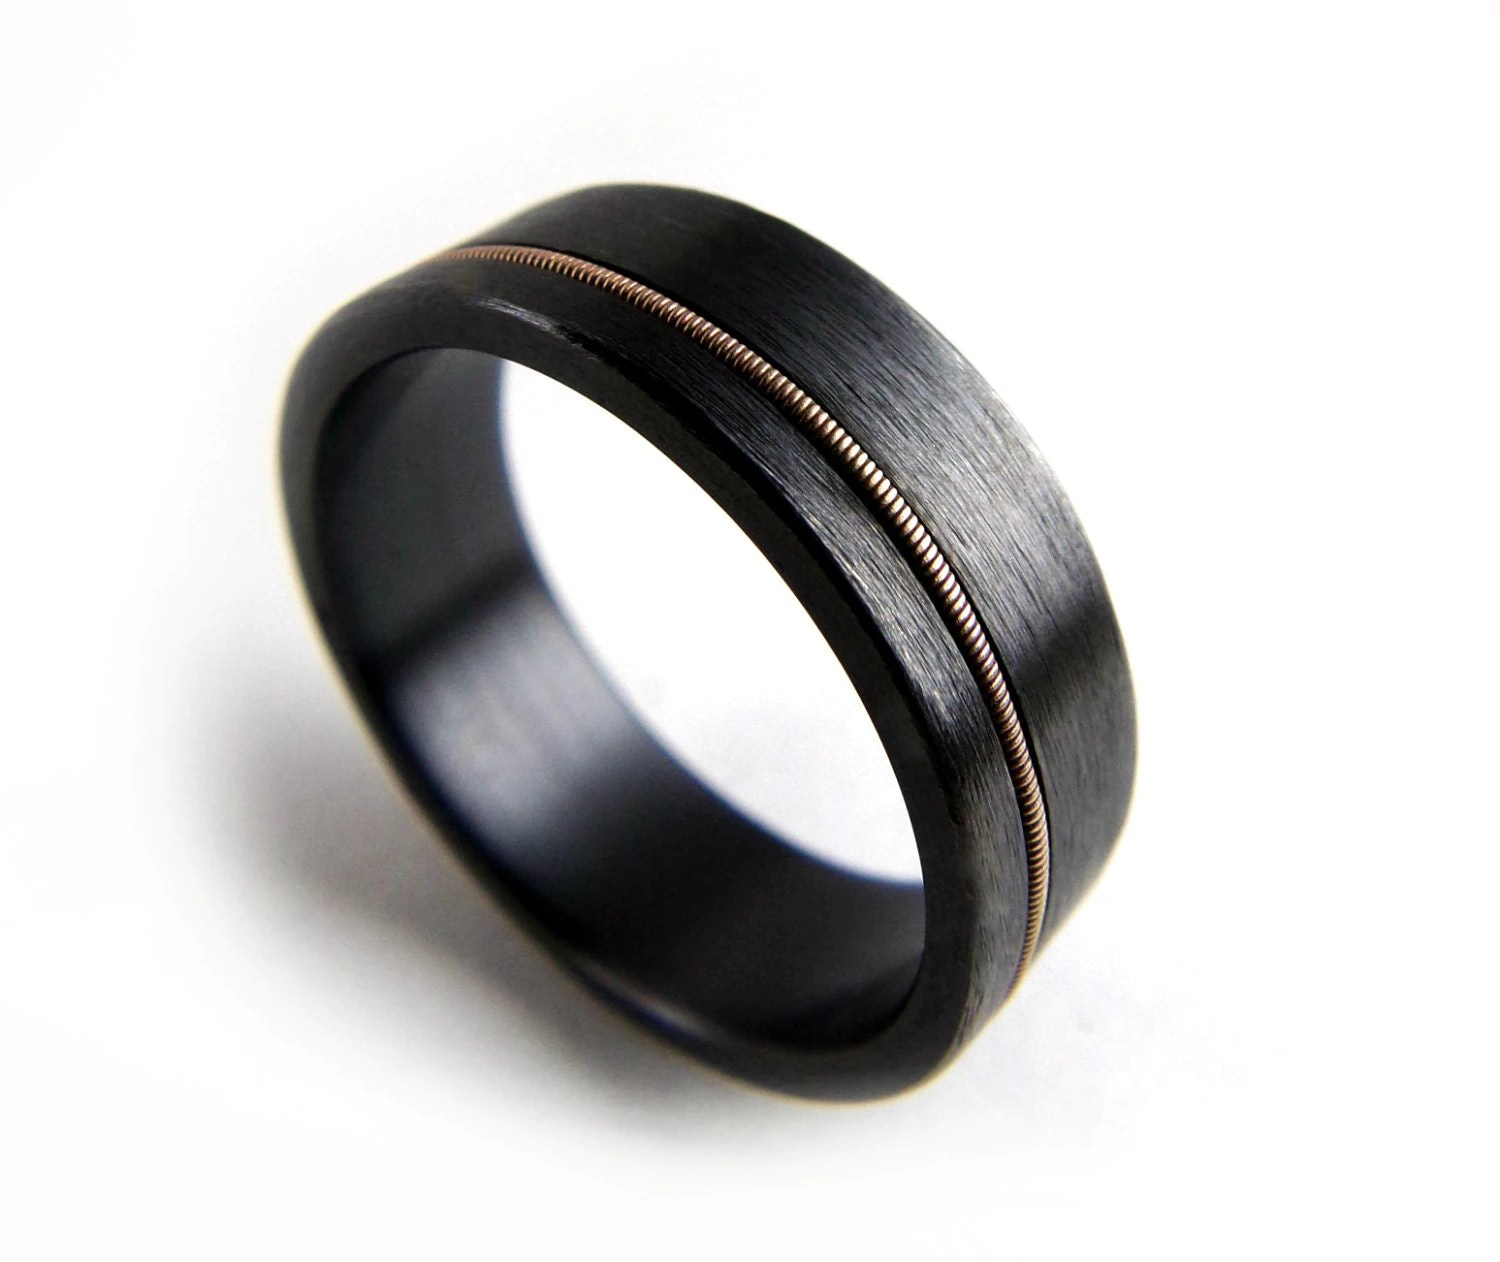 black wedding band flexible wedding ring Black Zirconium Ring Guitar String Ring Black Metal Ring Guitar String Jewelry Black Ring Men Black Ring Women Wedding Ring Black Band